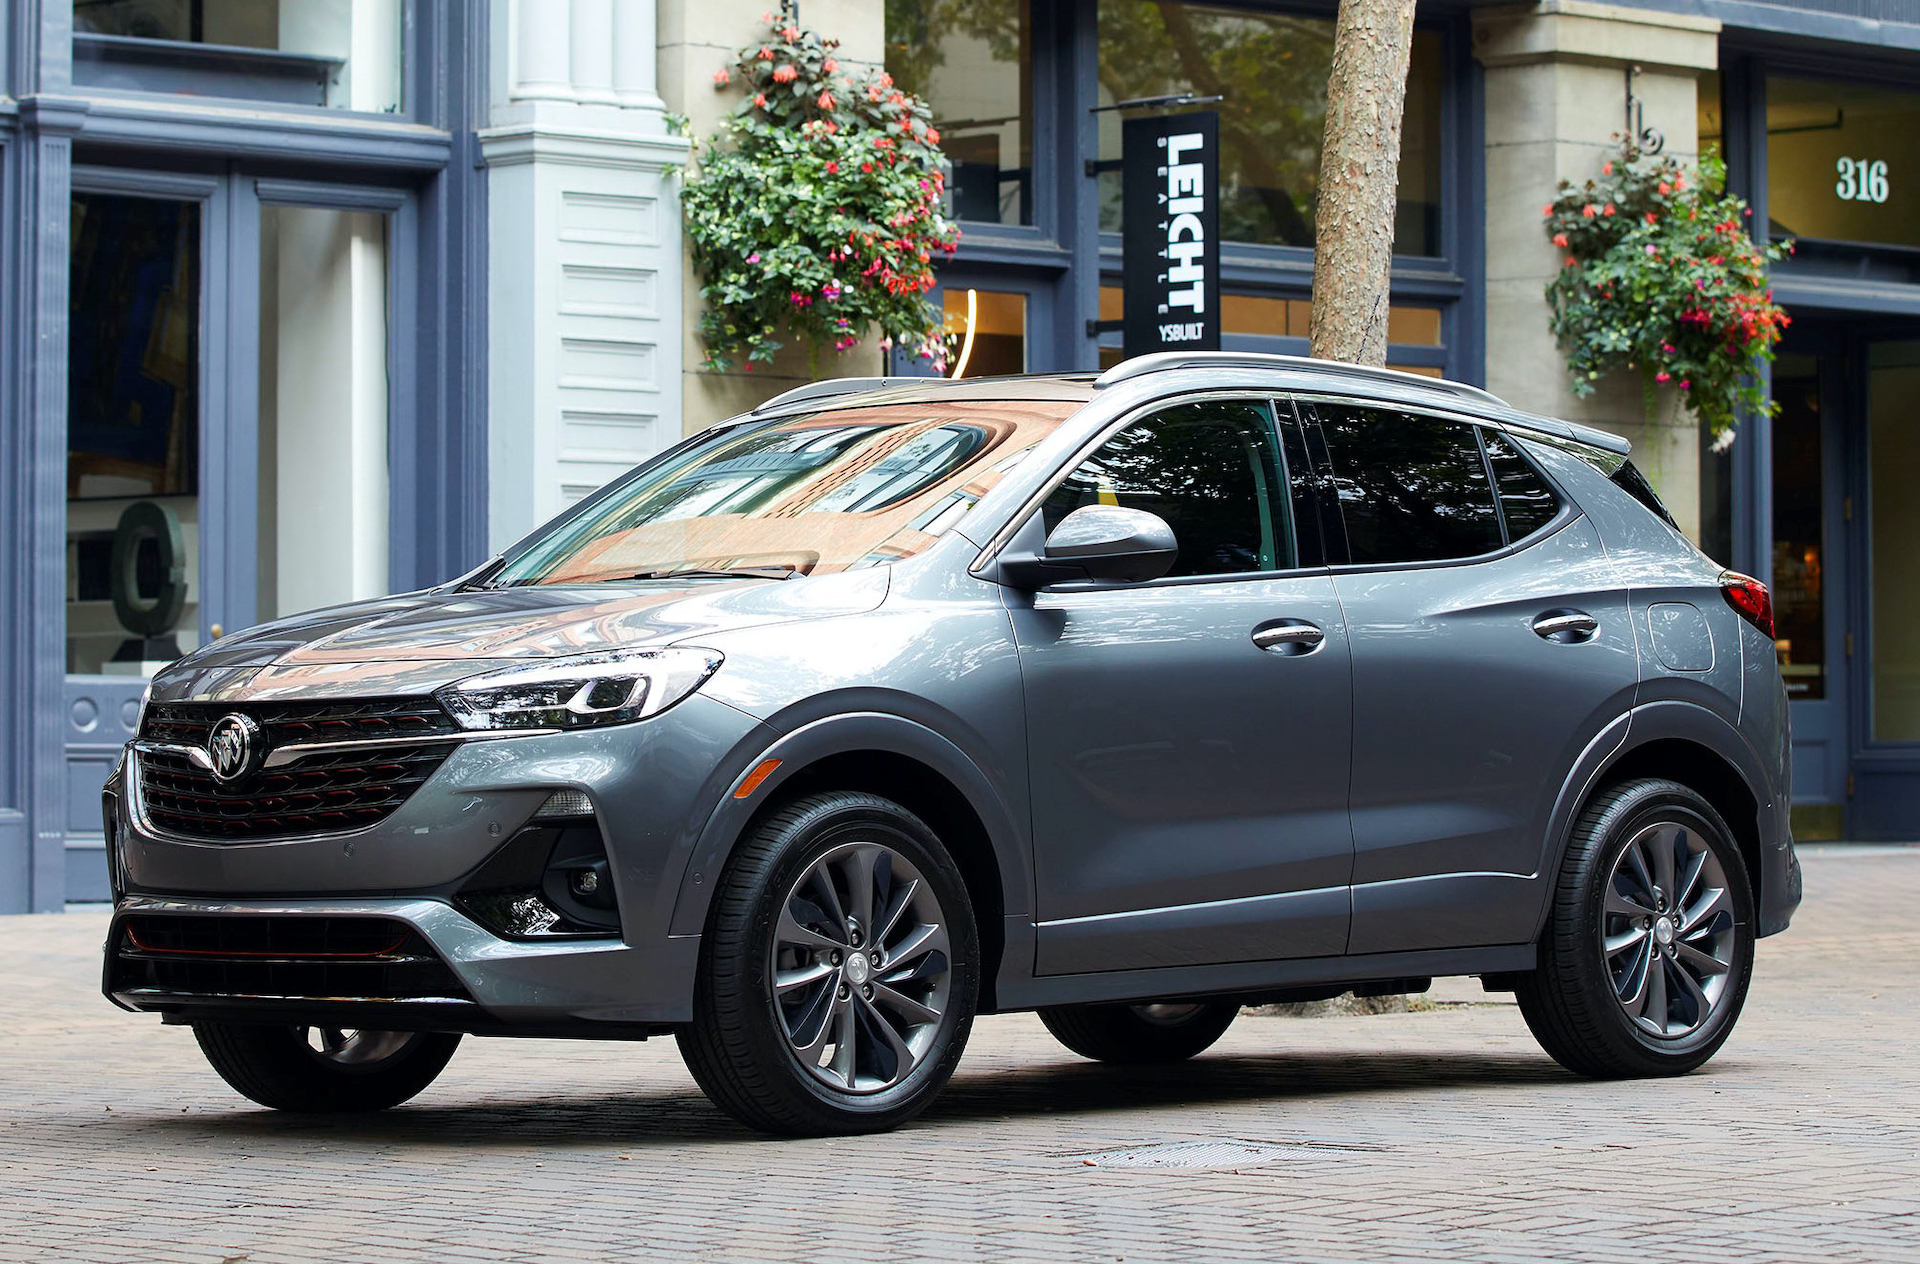 2021 Buick Encore Review, Ratings, Specs, Prices, And Photos 2021 Buick Encore Essence Reviews, Fwd, Specs